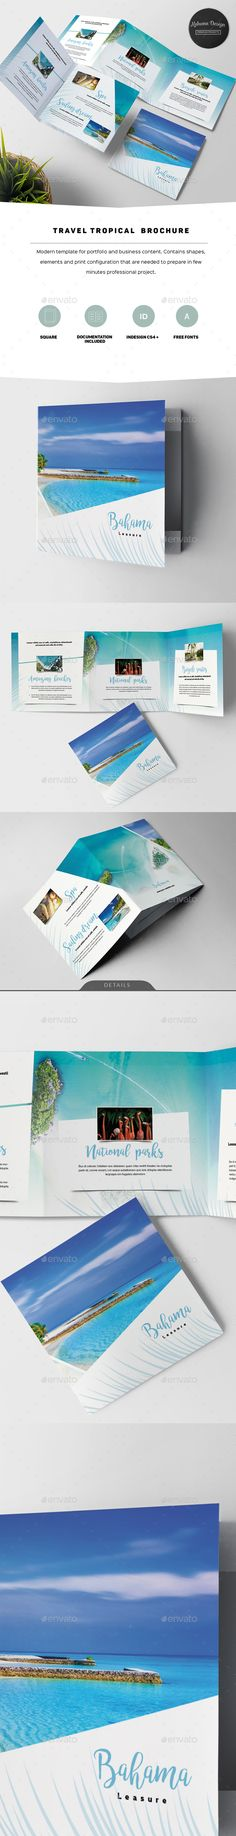 Travel Tropical Brochure — InDesign INDD #accommodation #information • Download ➝ https://graphicriver.net/item/travel-tropical-brochure/20351742?ref=pxcr